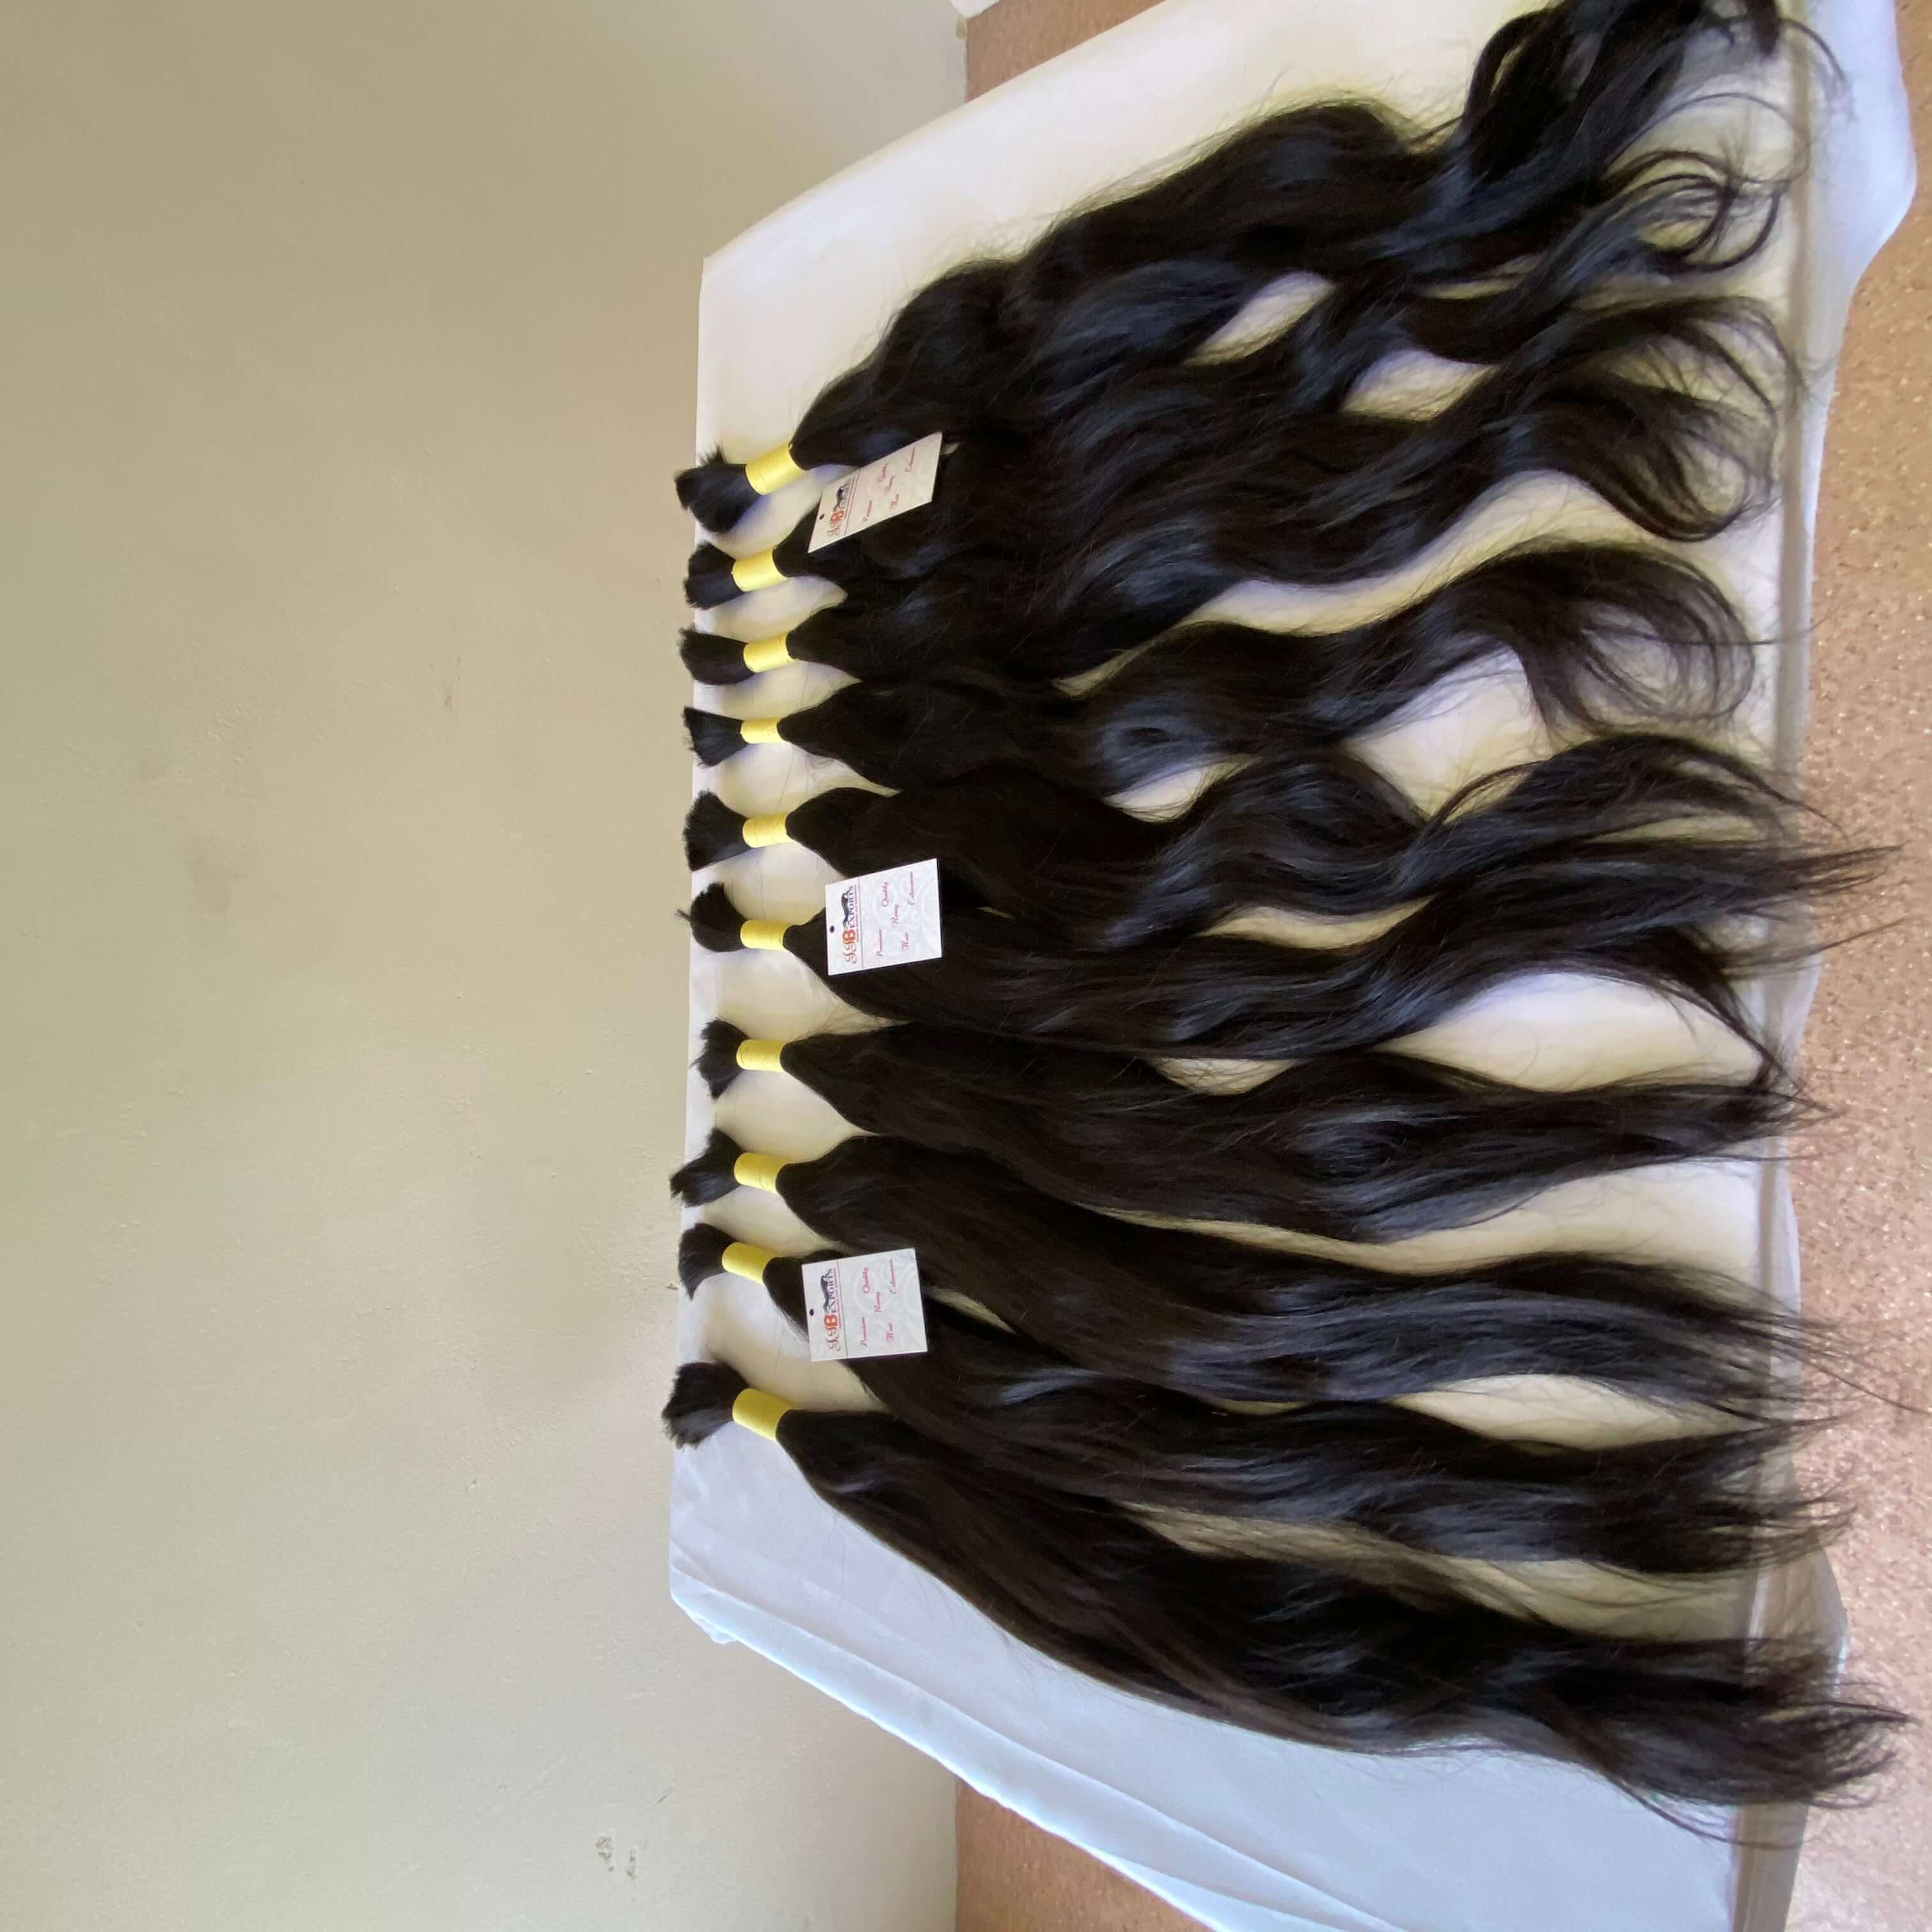 Soft & Silky 100% Raw Unprocessed Indian Virgin Bulk Remy Human Hair Extensions